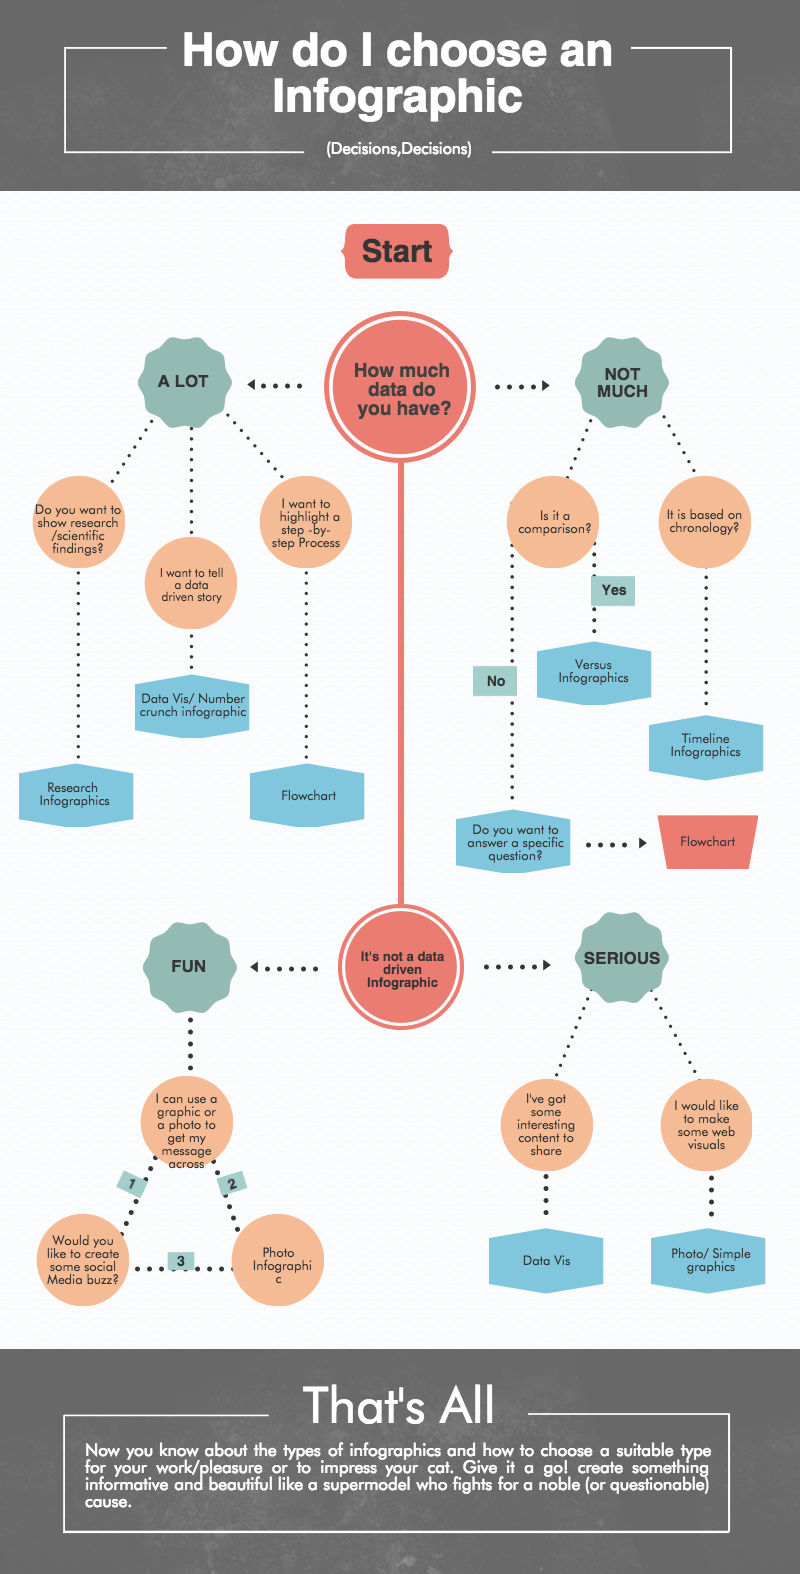 flowchart infographic by piktochart | 8 types of infographics